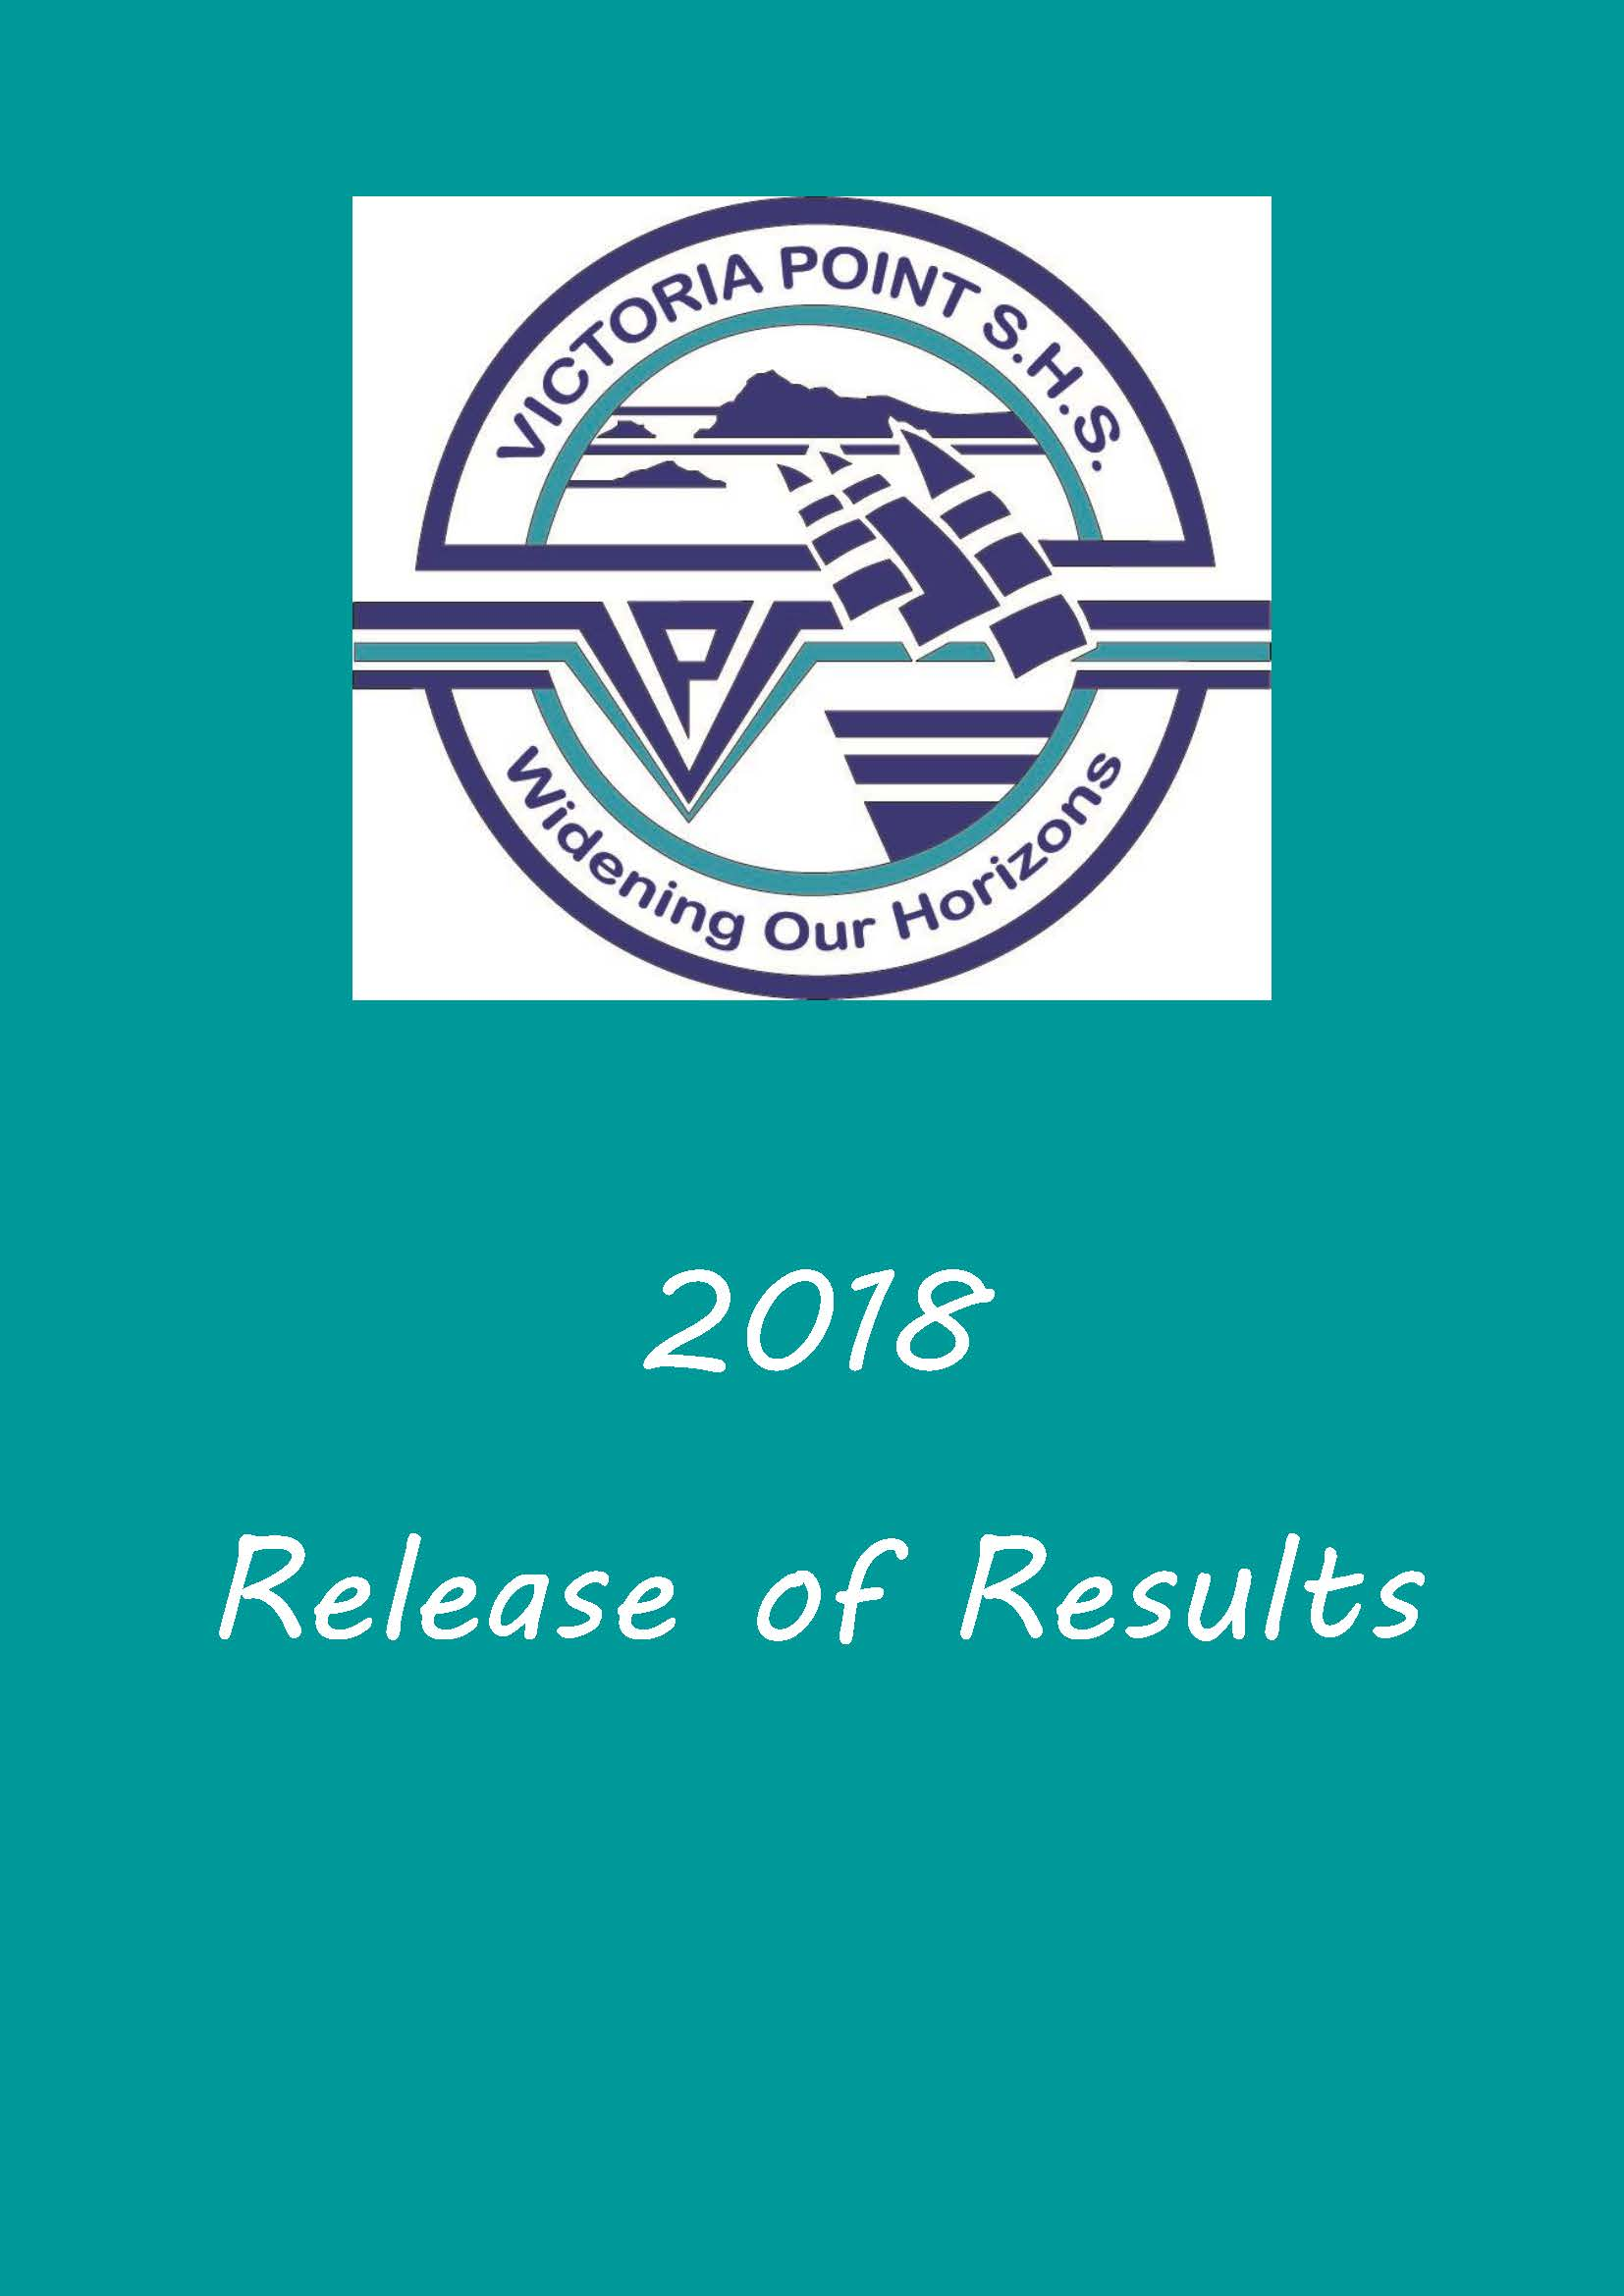 QCAA - Release of Results 2018